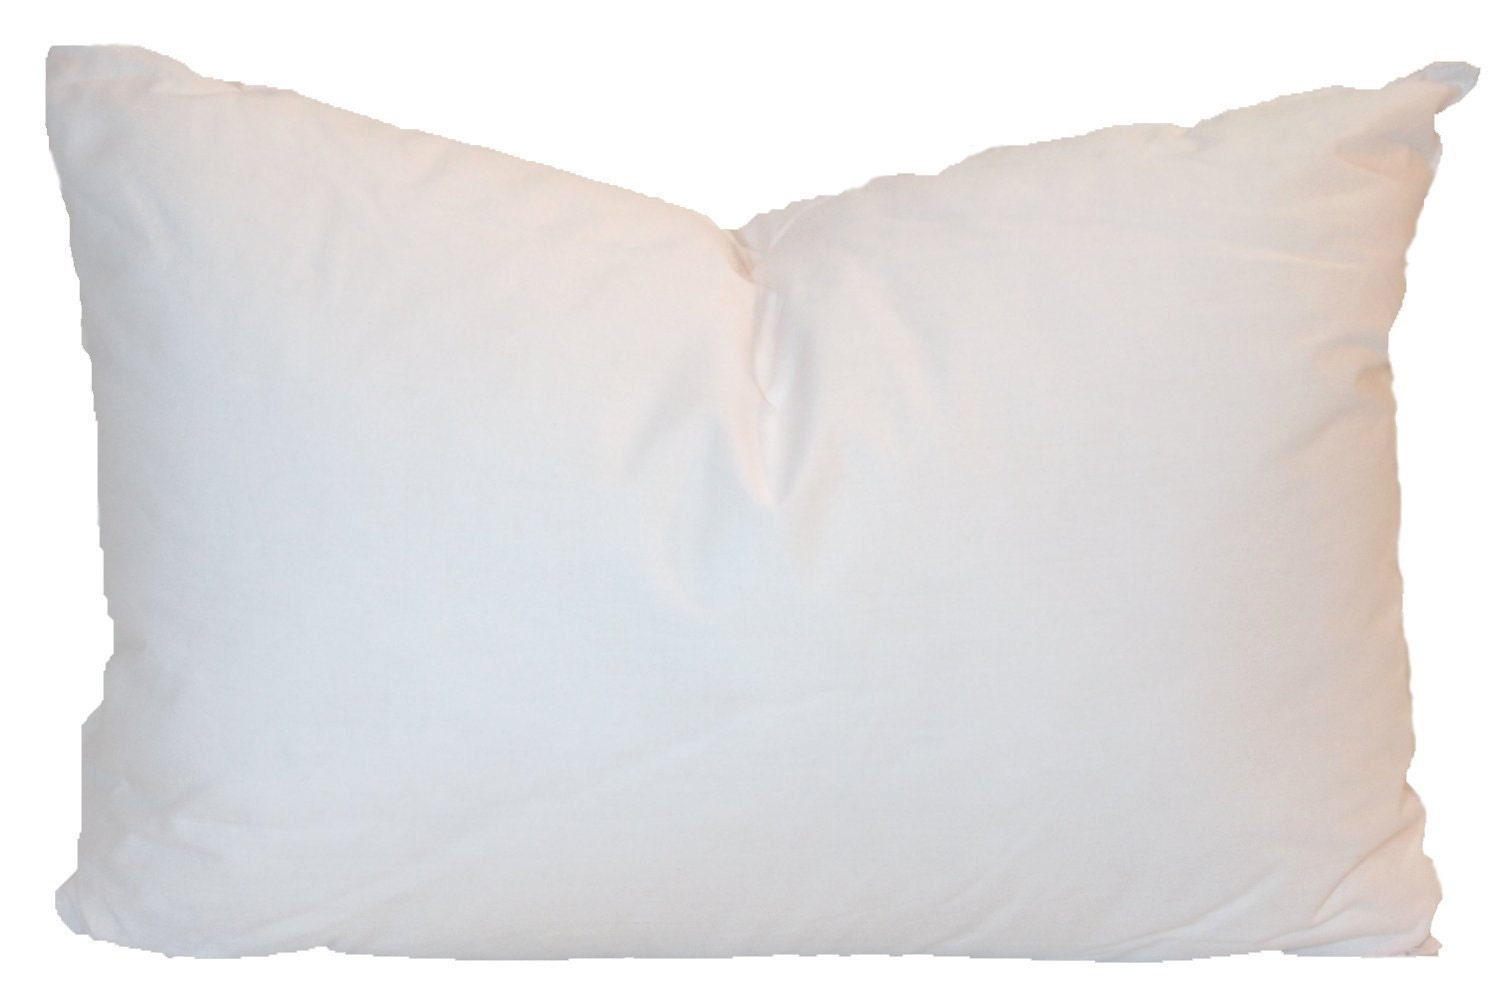 20x26 Synthetic Faux Down Pillow Form Insert for Craft / Throw